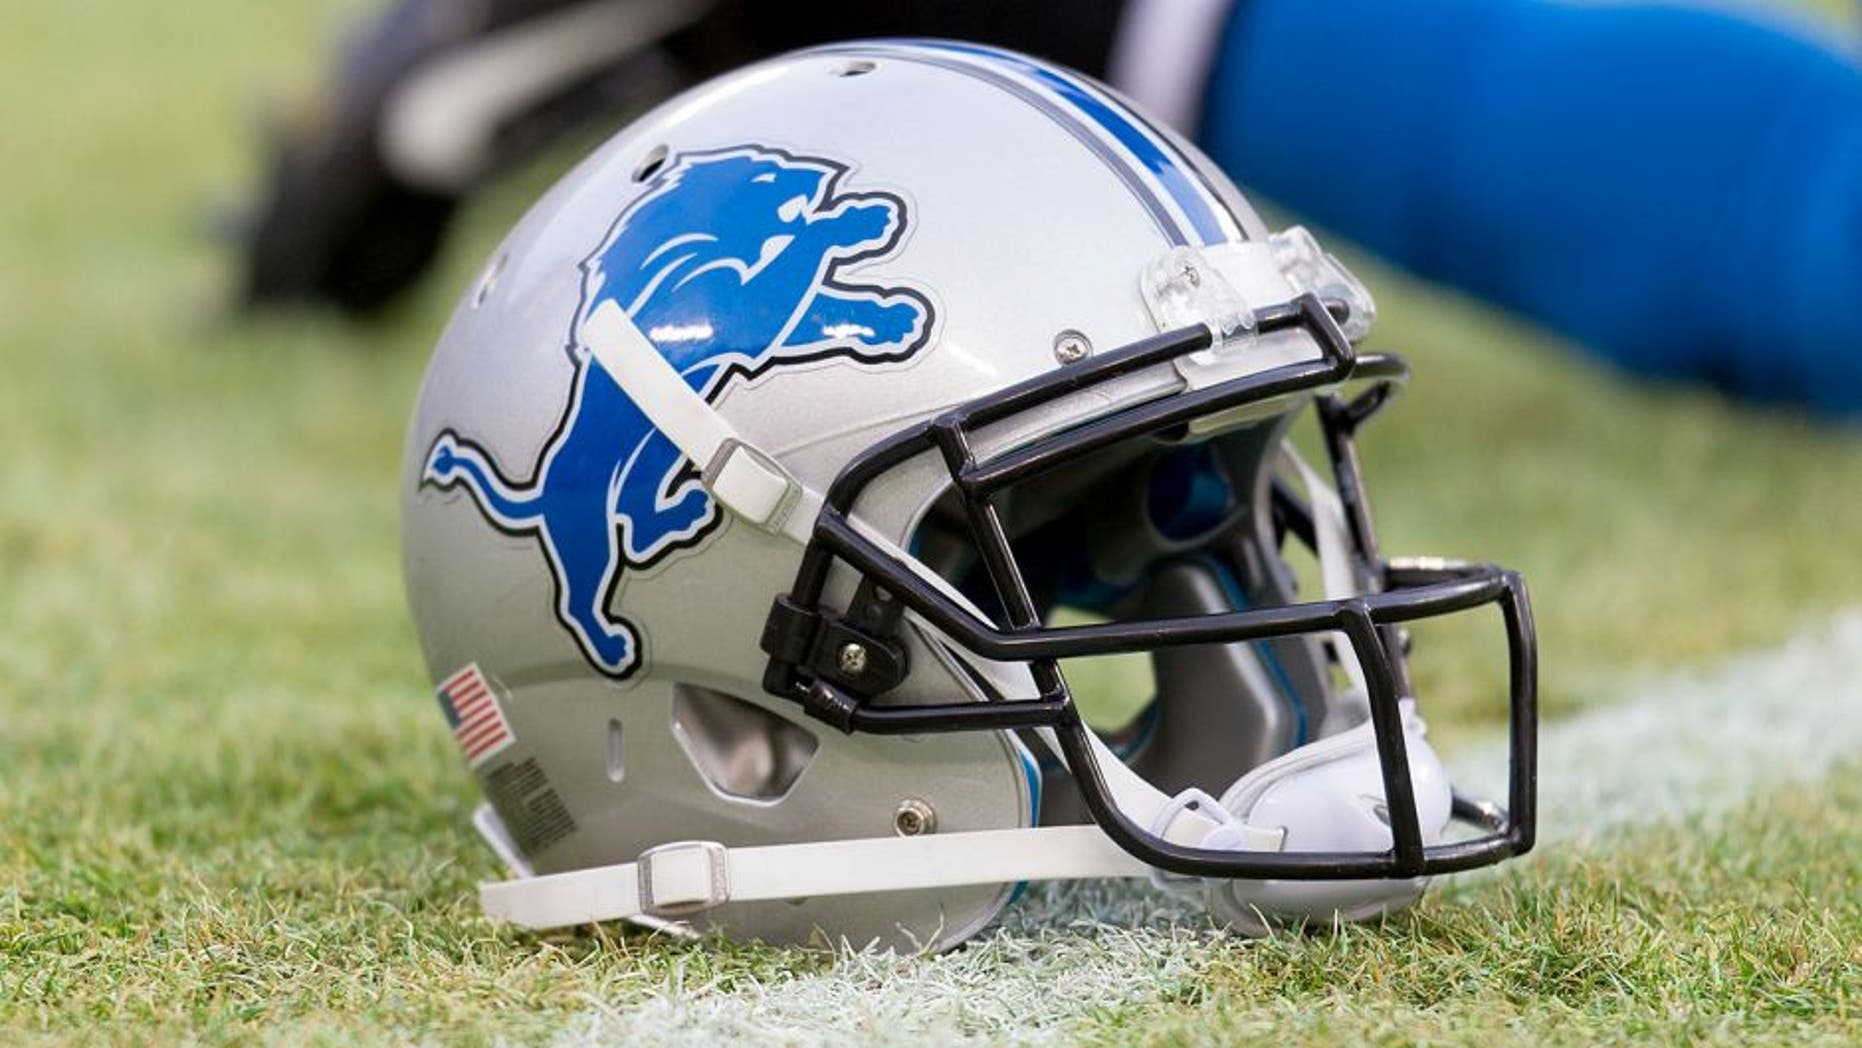 Dec 28, 2014; Green Bay, WI, USA; A Detroit Lions helmet sits on the field during warmups prior to the game against the Green Bay Packers at Lambeau Field. Green Bay won 30-20. Mandatory Credit: Jeff Hanisch-USA TODAY Sports